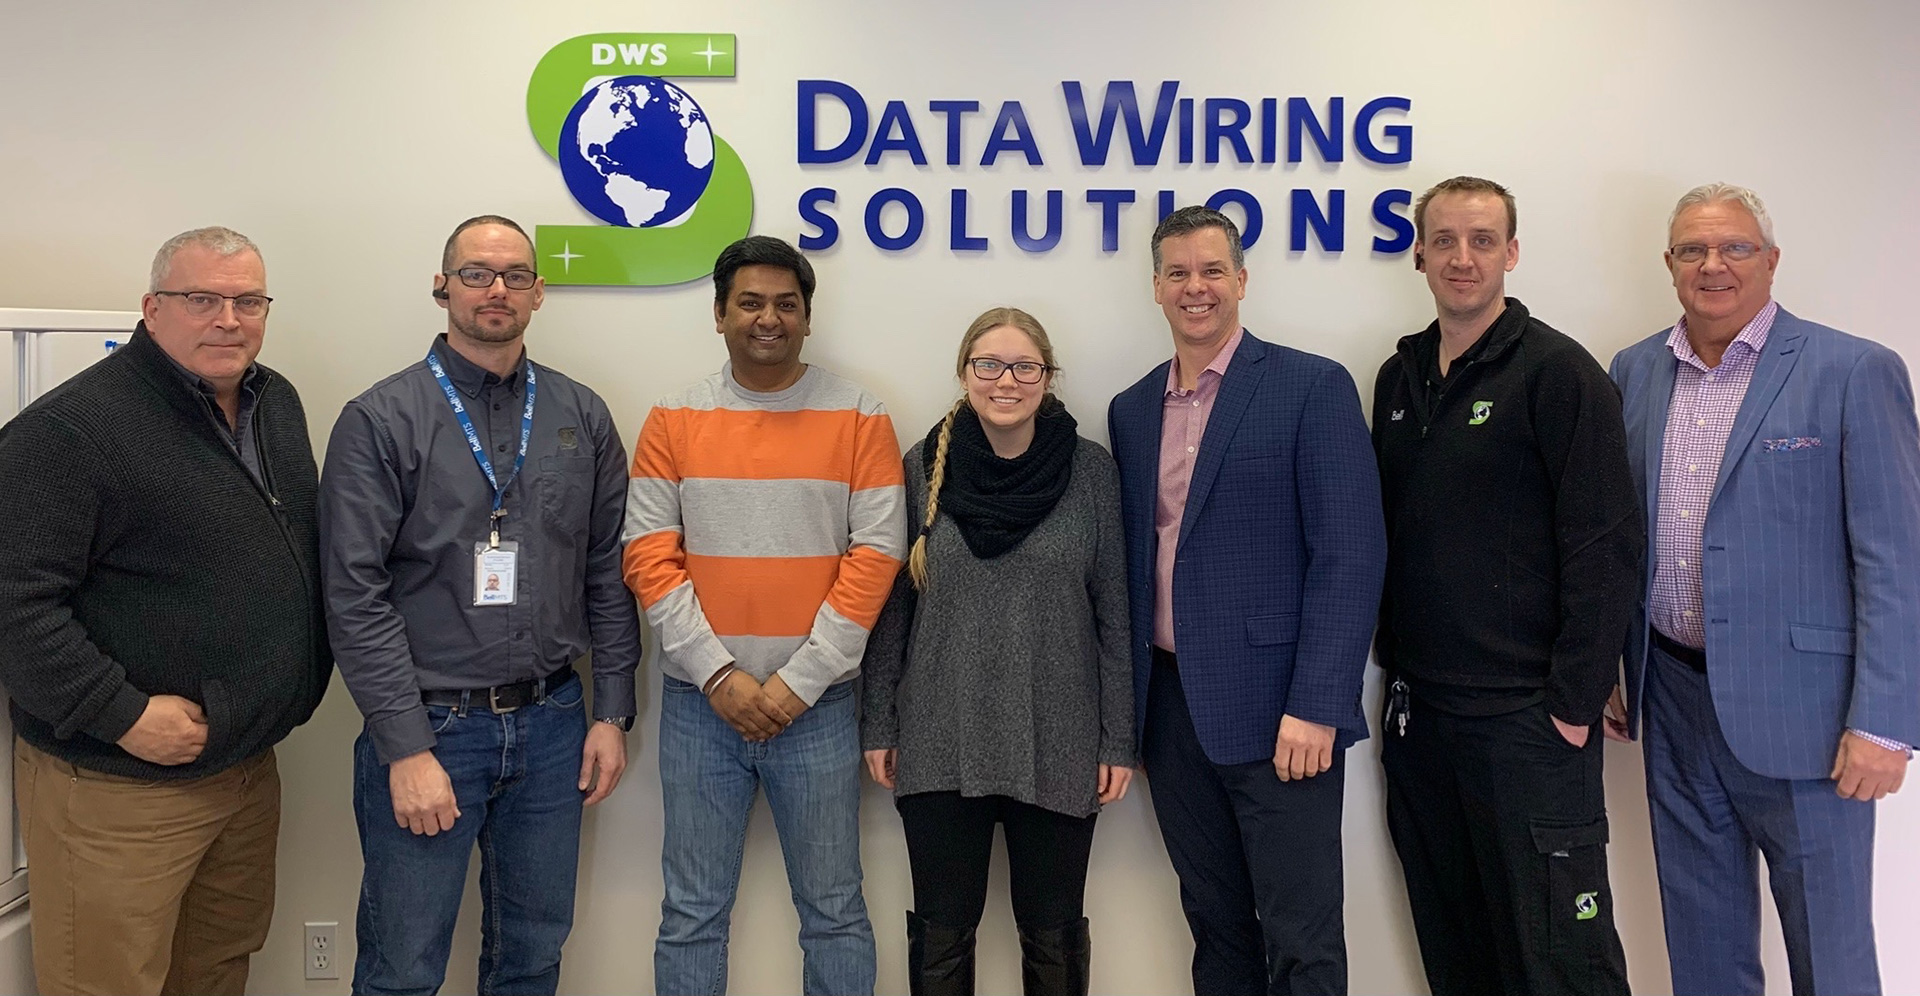 First anniversary of the DWS Manitoba office